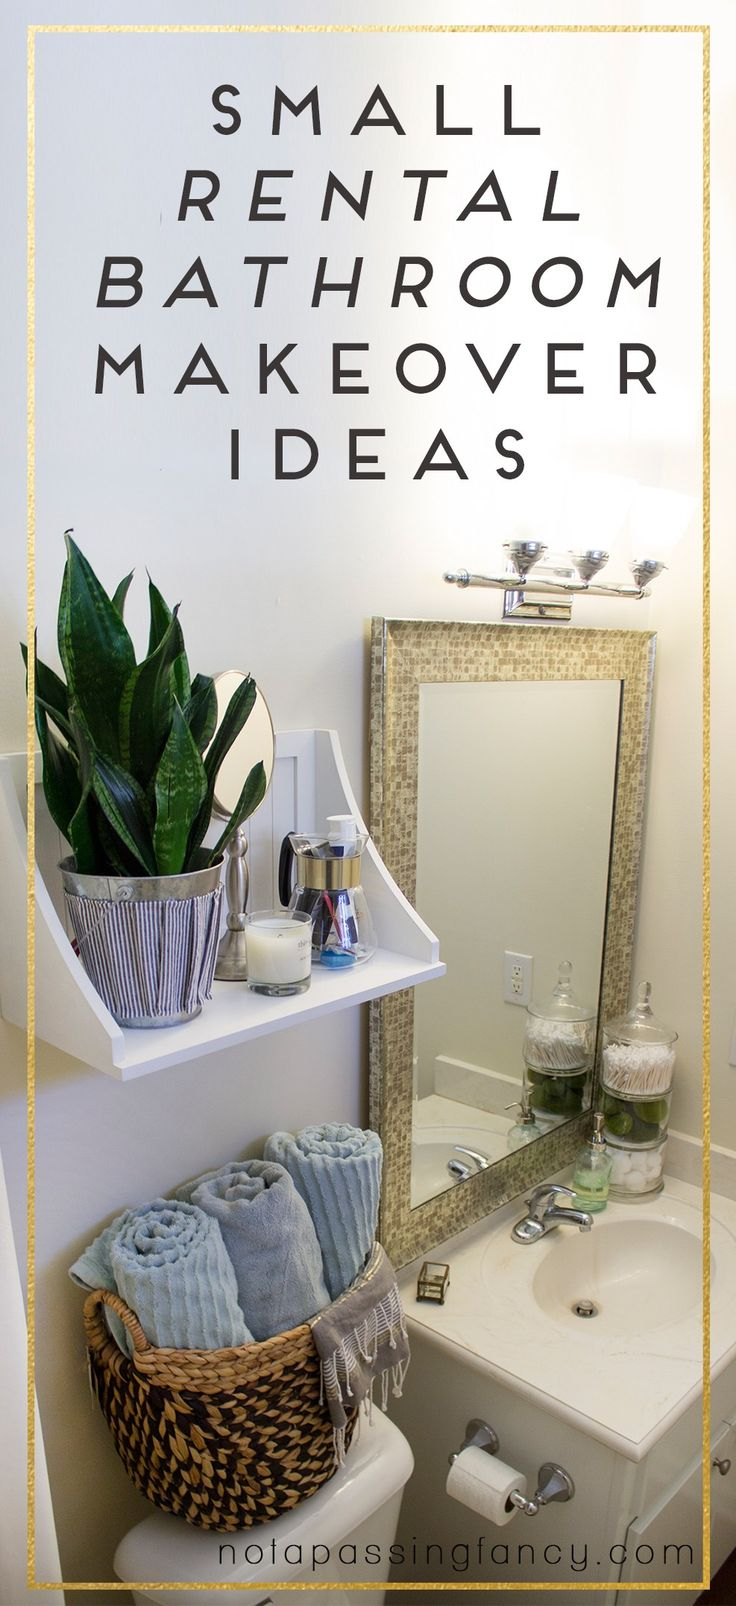 Bathroom Decorating Ideas For Renters i think the photos will speak for themselves, but i can't help but